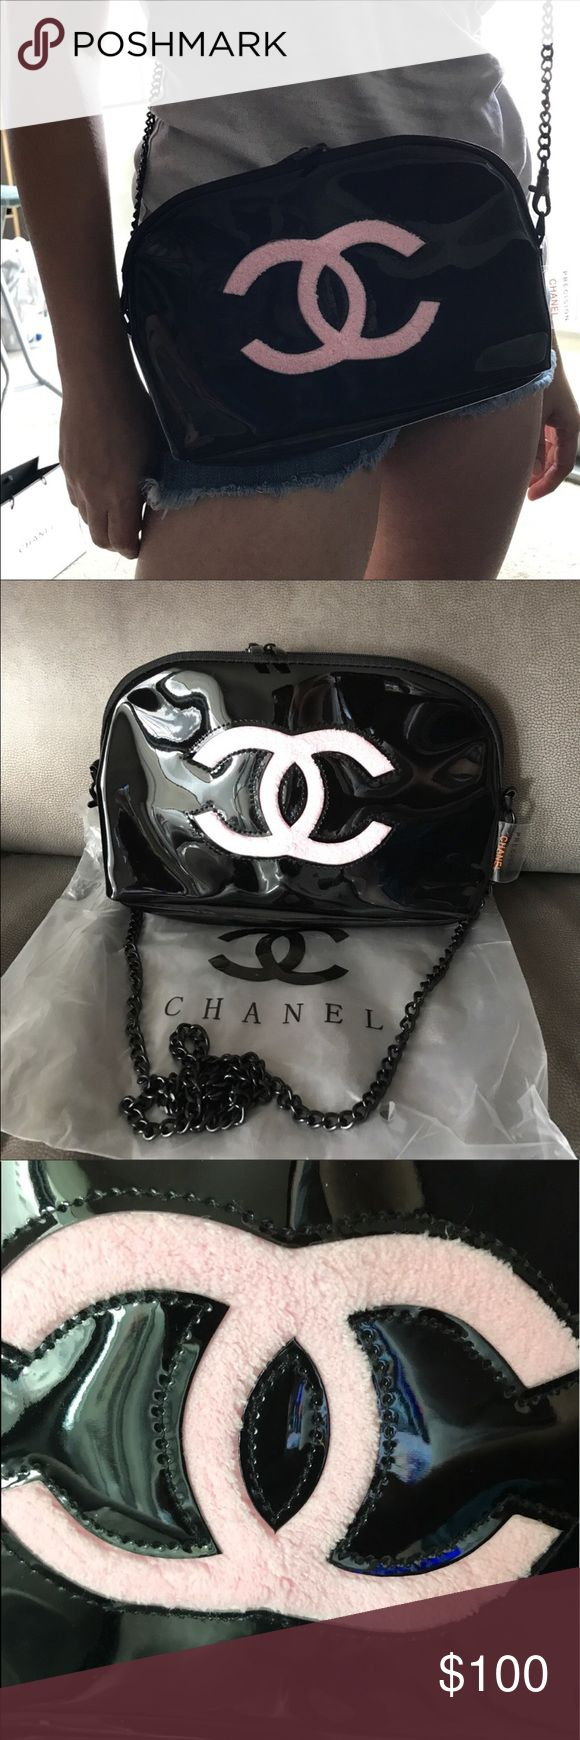 "Chanel VIP gift bag Black color with pink ""CC"" logo on front. Black metal chain,Two Zip closure, Pink satin lining. This is a VIP gift item, does not come with hologram sticker, authenticity card or tags. This Chanel VIP gift only in Asia not in US. W: 10""H: 6.5""D: 4.25"" Shoulder strap drop: 18"" CHANEL Bags Crossbody Bags"